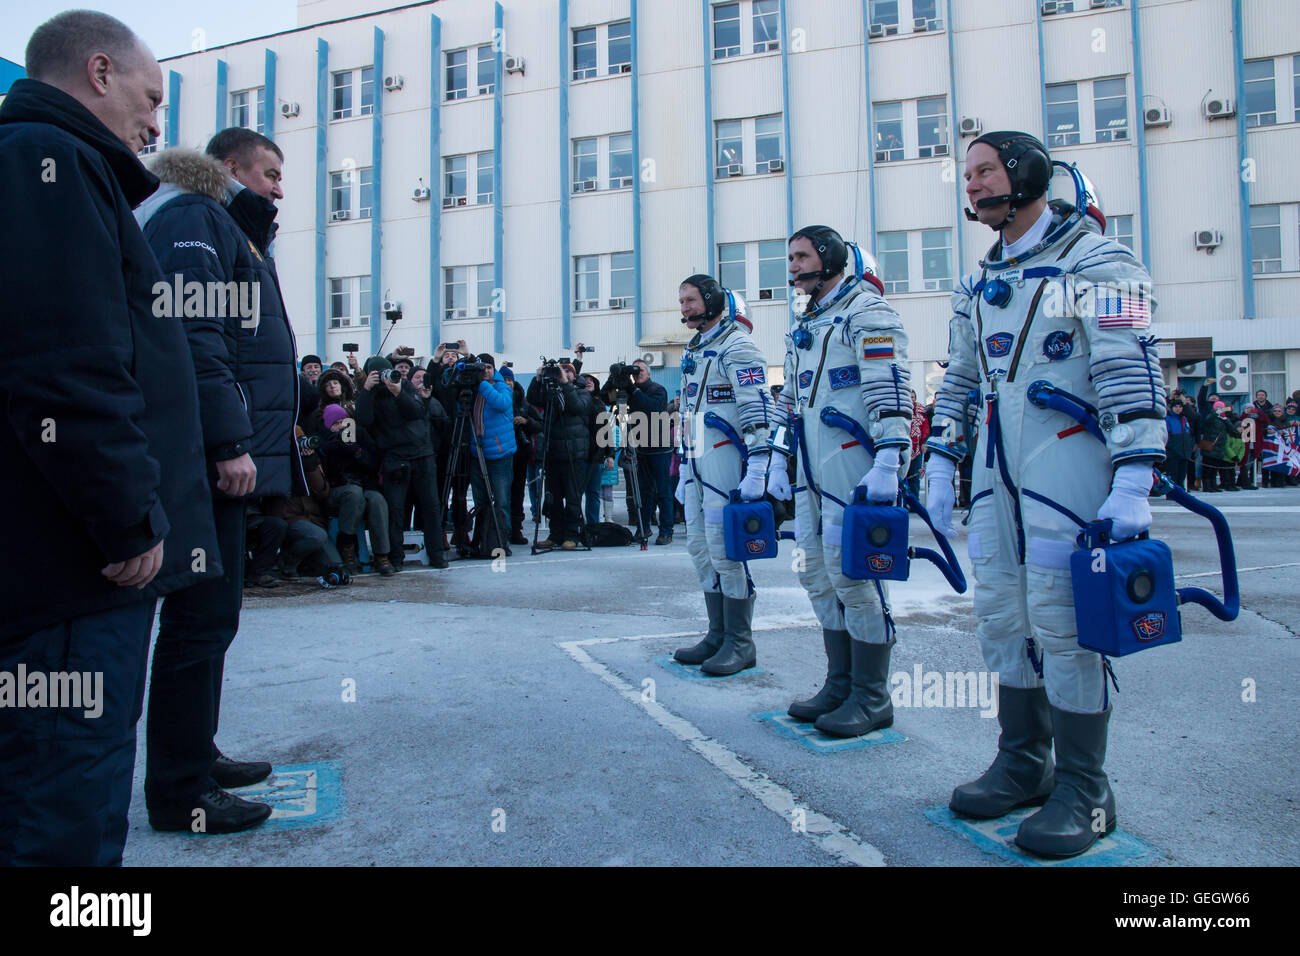 Expedition 46 Preflight  12150070 - Stock Image